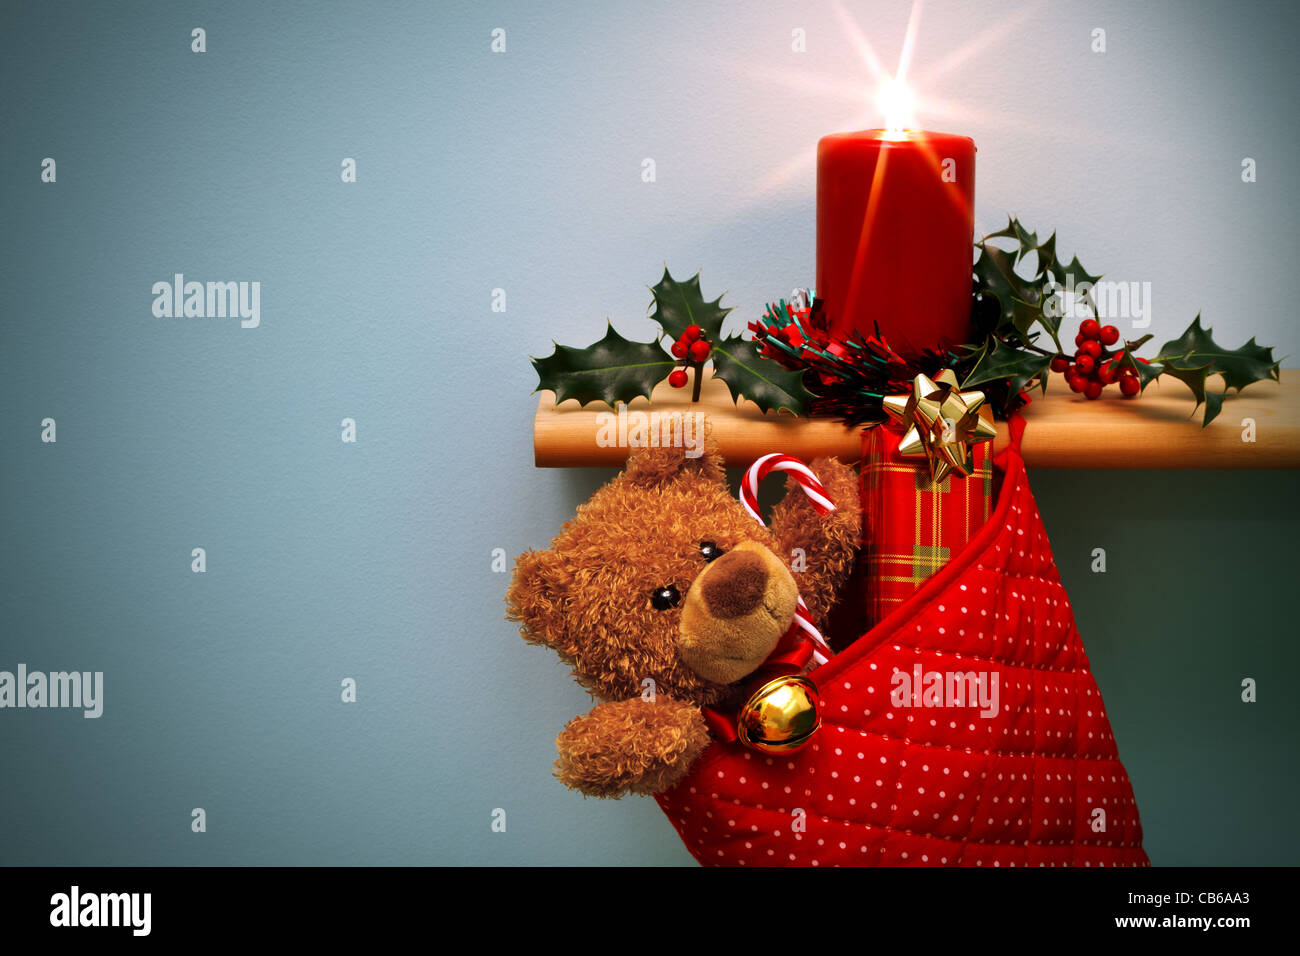 Photo of a Christmas stocking filled with presents and a candle surrounded by holly - Stock Image